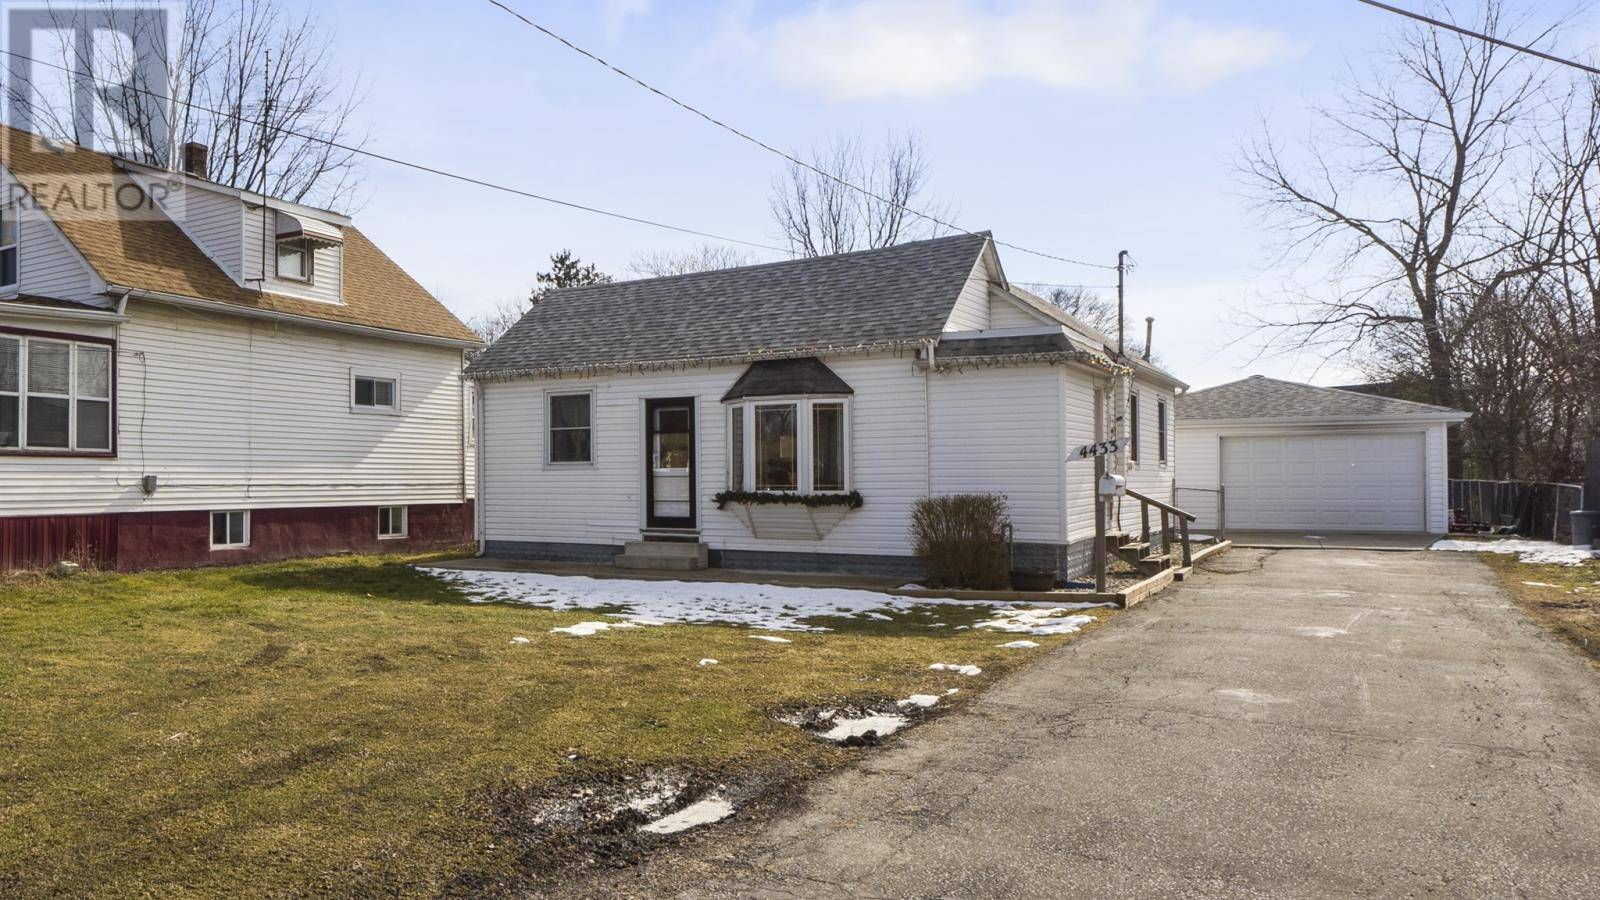 House for sale at 4433 Wyandotte St East Windsor Ontario - MLS: 20002008